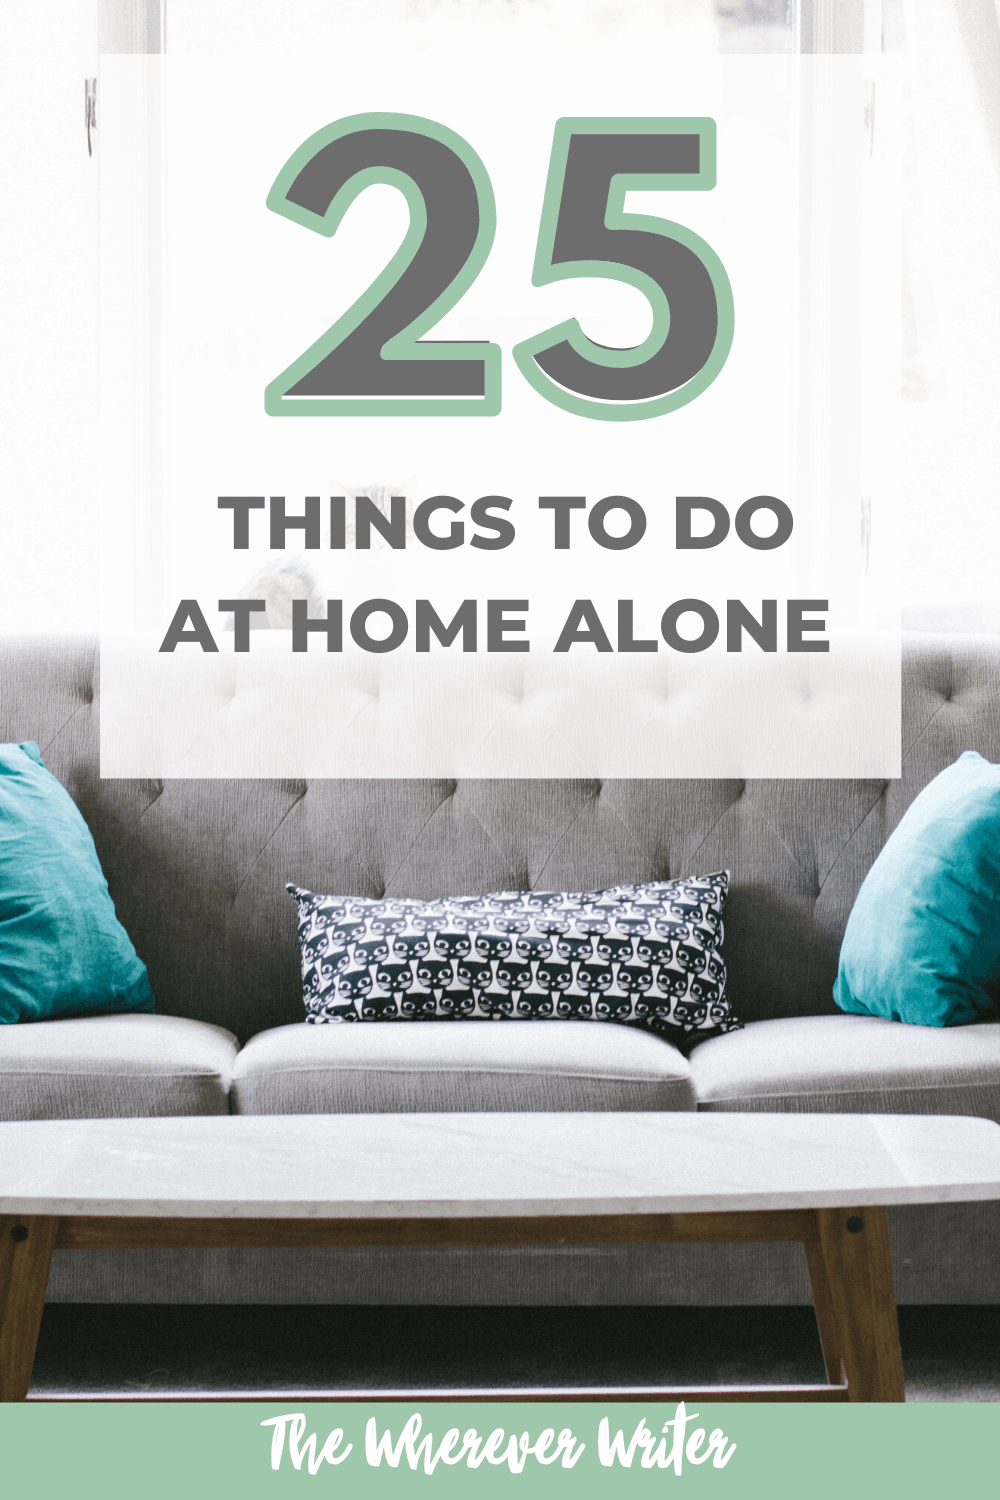 Here's a list of ideas of 25 things to do when you are home alone or bored! With this creative list you can get started today with learning something new, being productive, or just taking some time for your self!